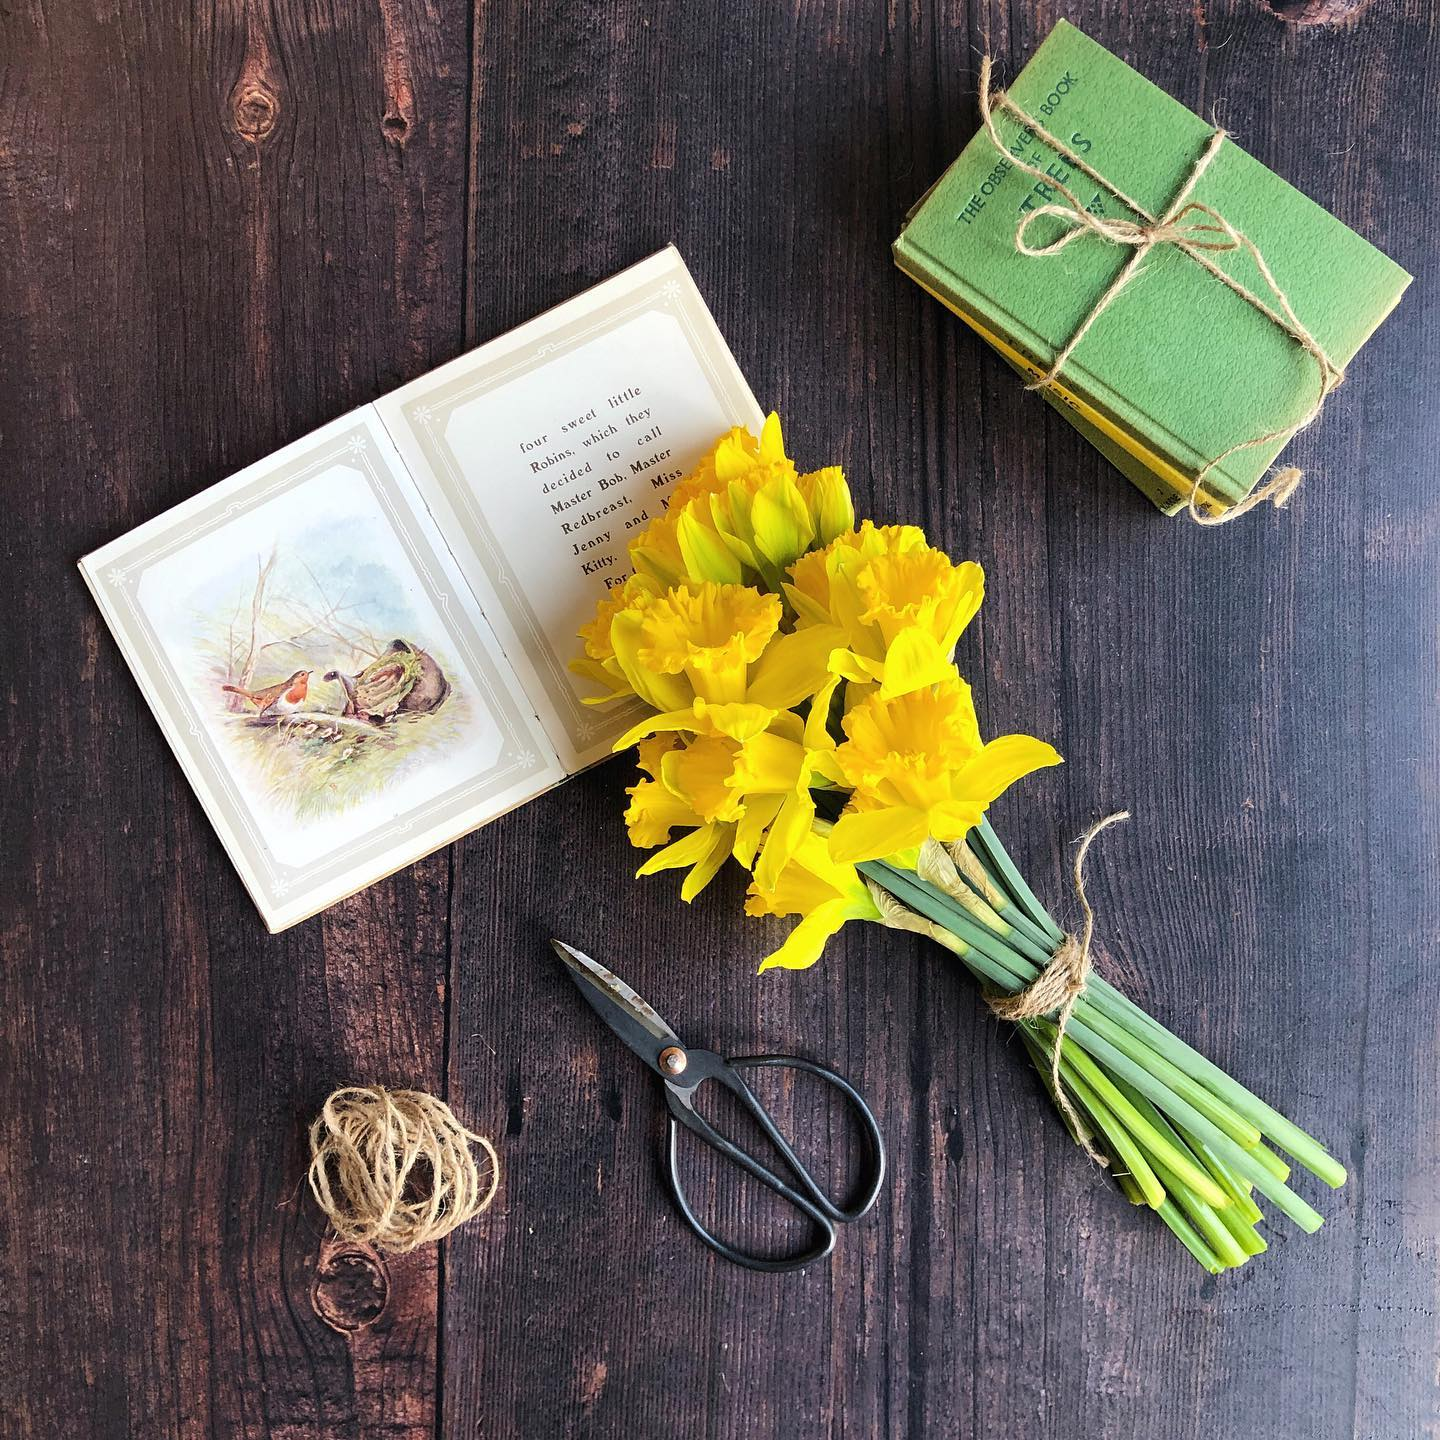 A few cheery daffodils and some vintage finds ..... distractions from the extension of our lockdown restrictions. How's everybody doing?